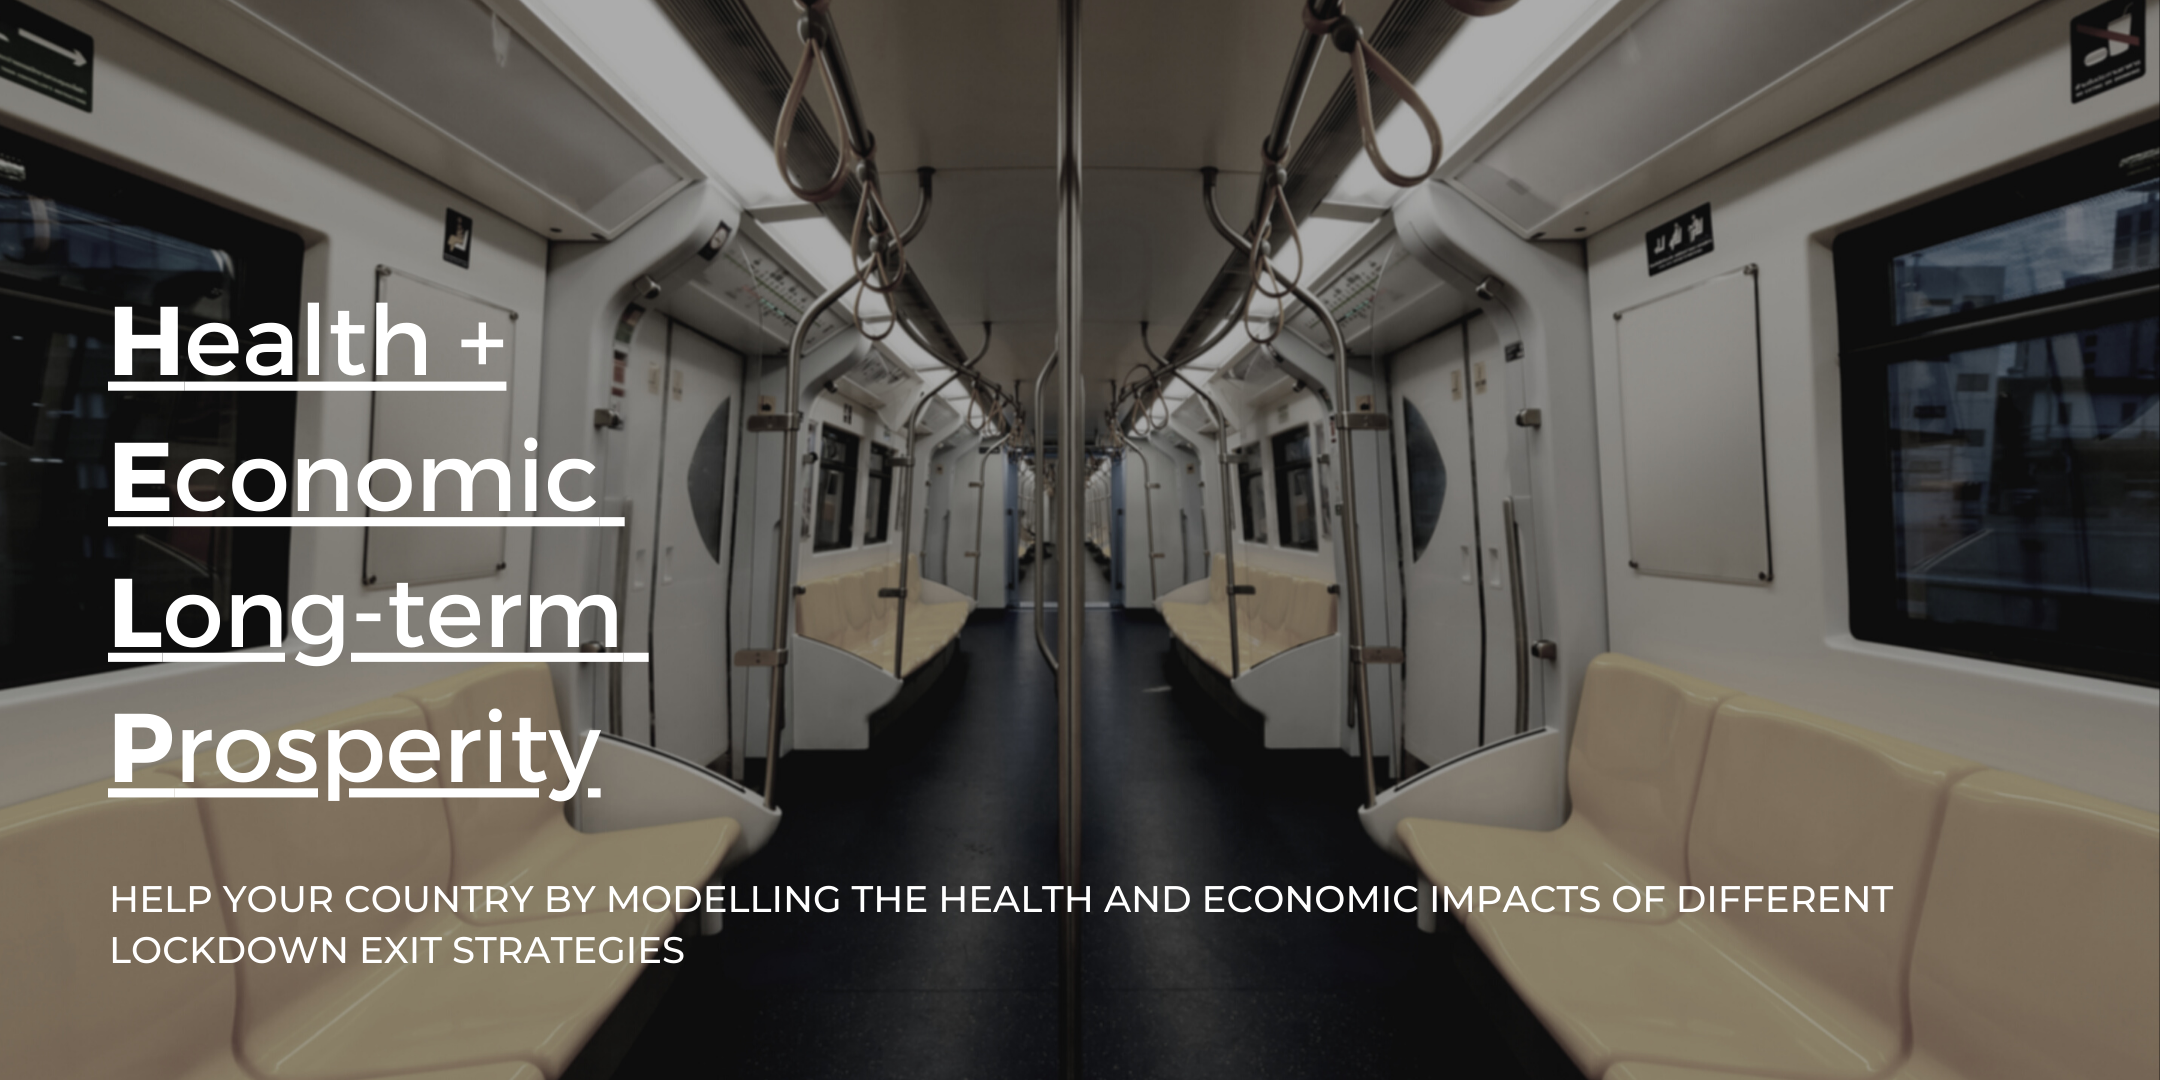 HELP Project: Modelling the health and economic impacts of exiting lockdown